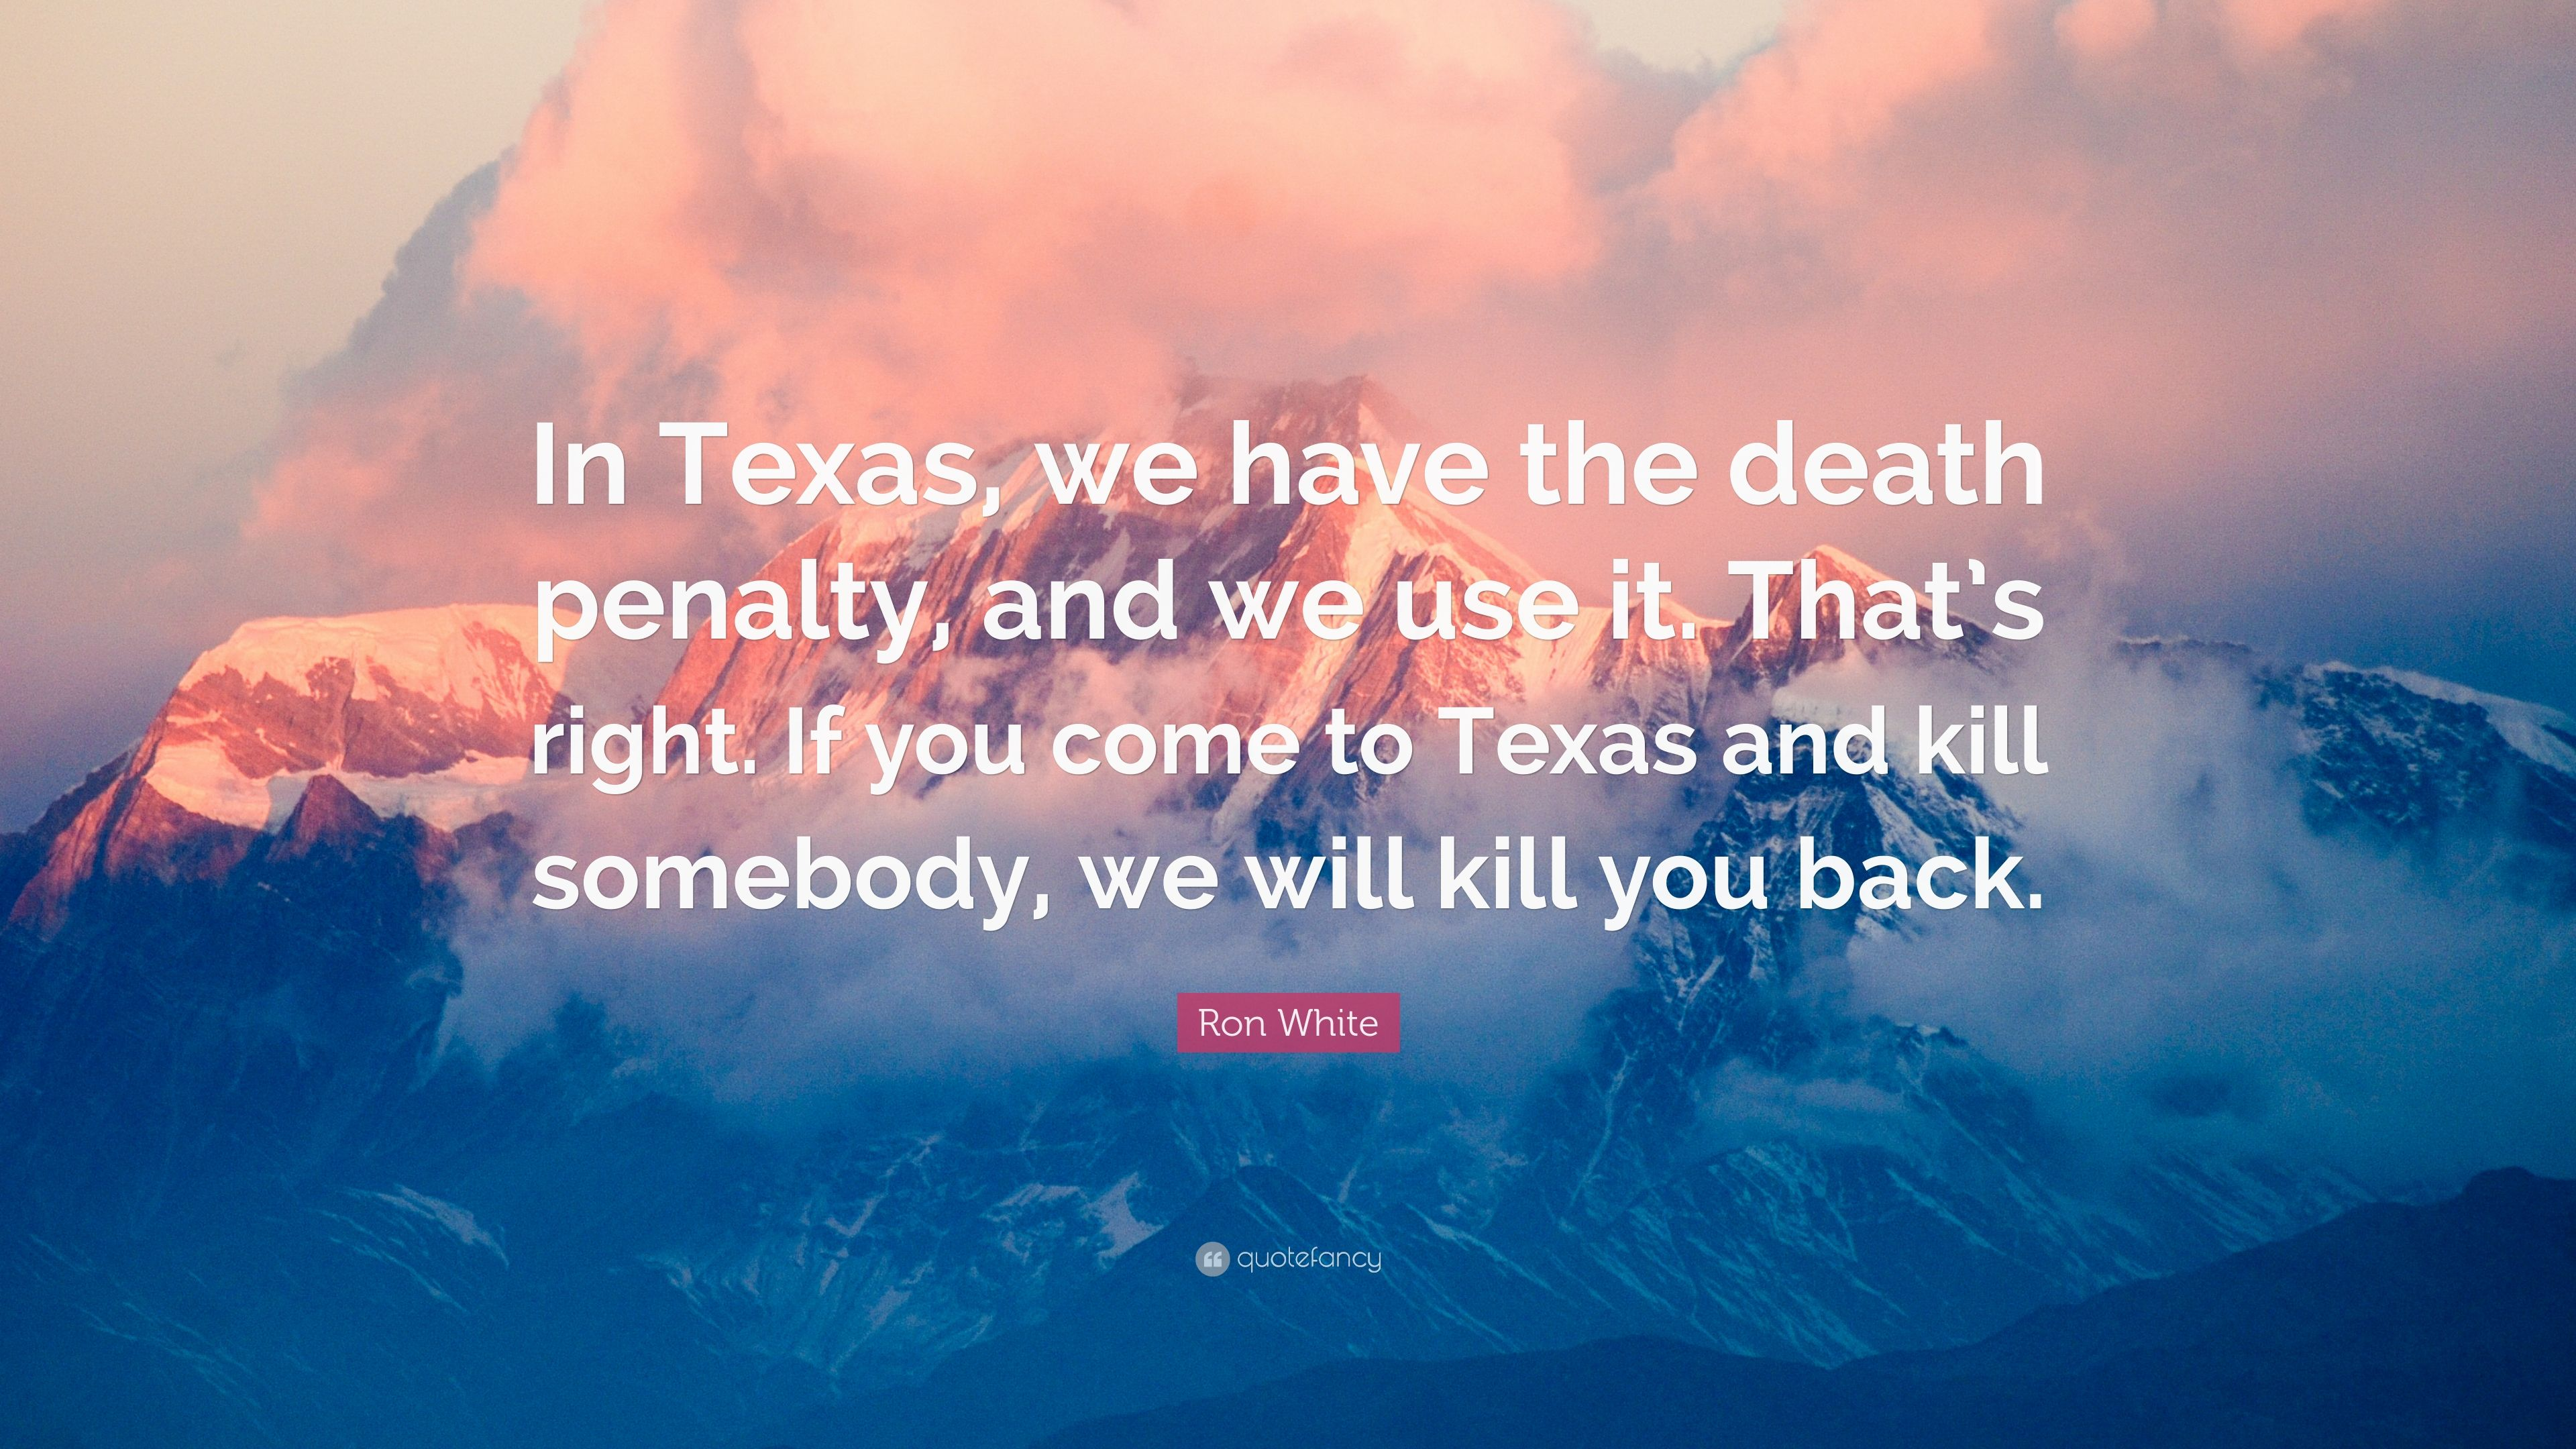 texas and the death penalty